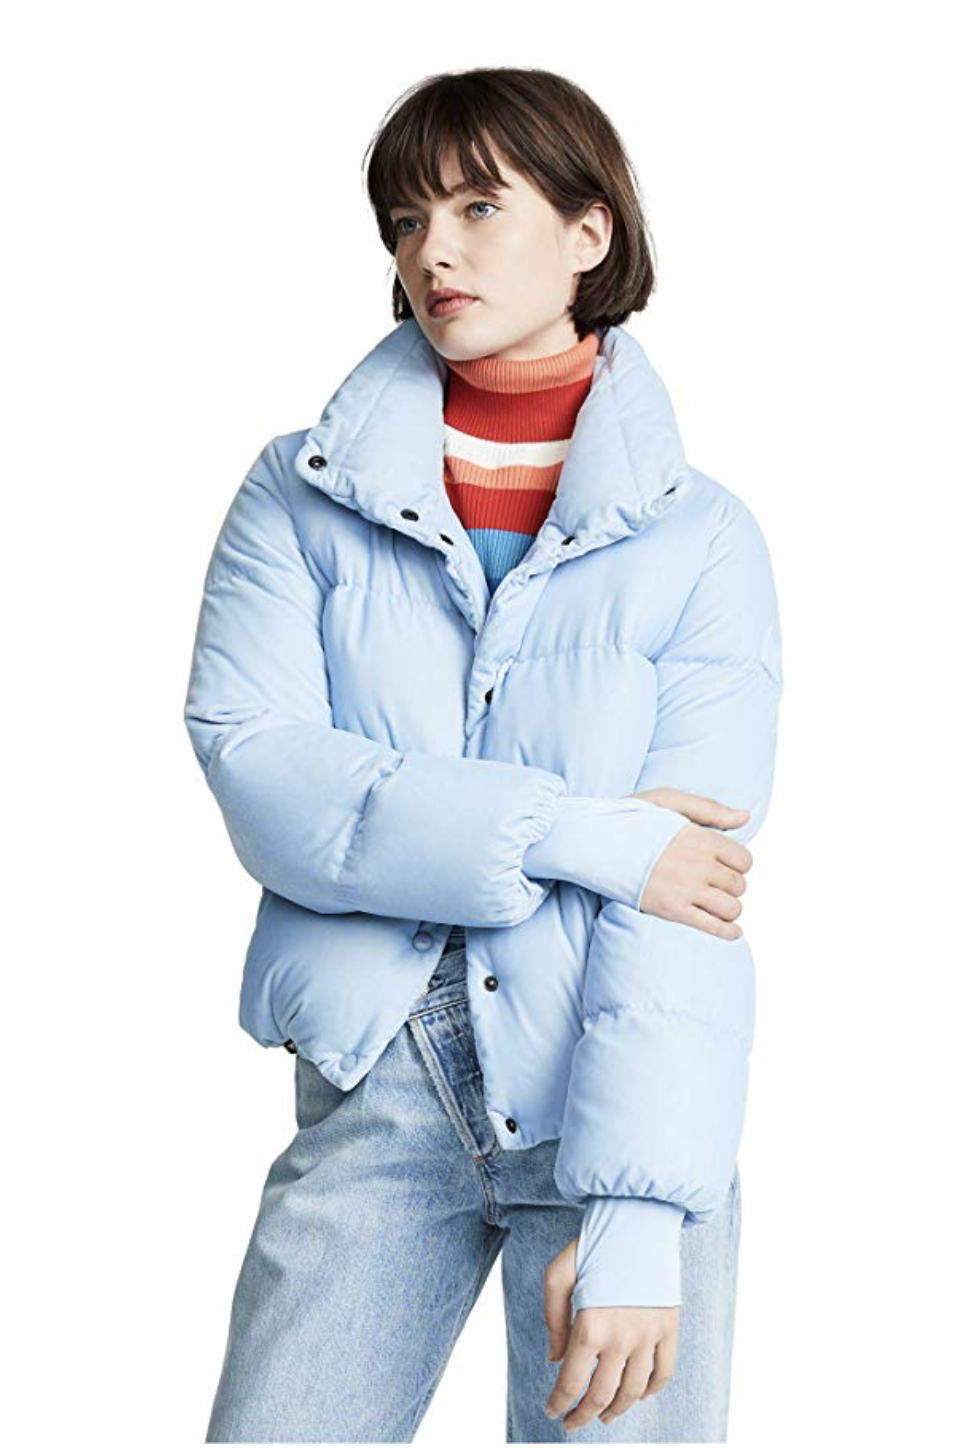 Puffer Coat - Puffer coats are all the hype this season - especially the Aritzia Super Puff. Unfortunately, that one seems to be sold out in almost every color!